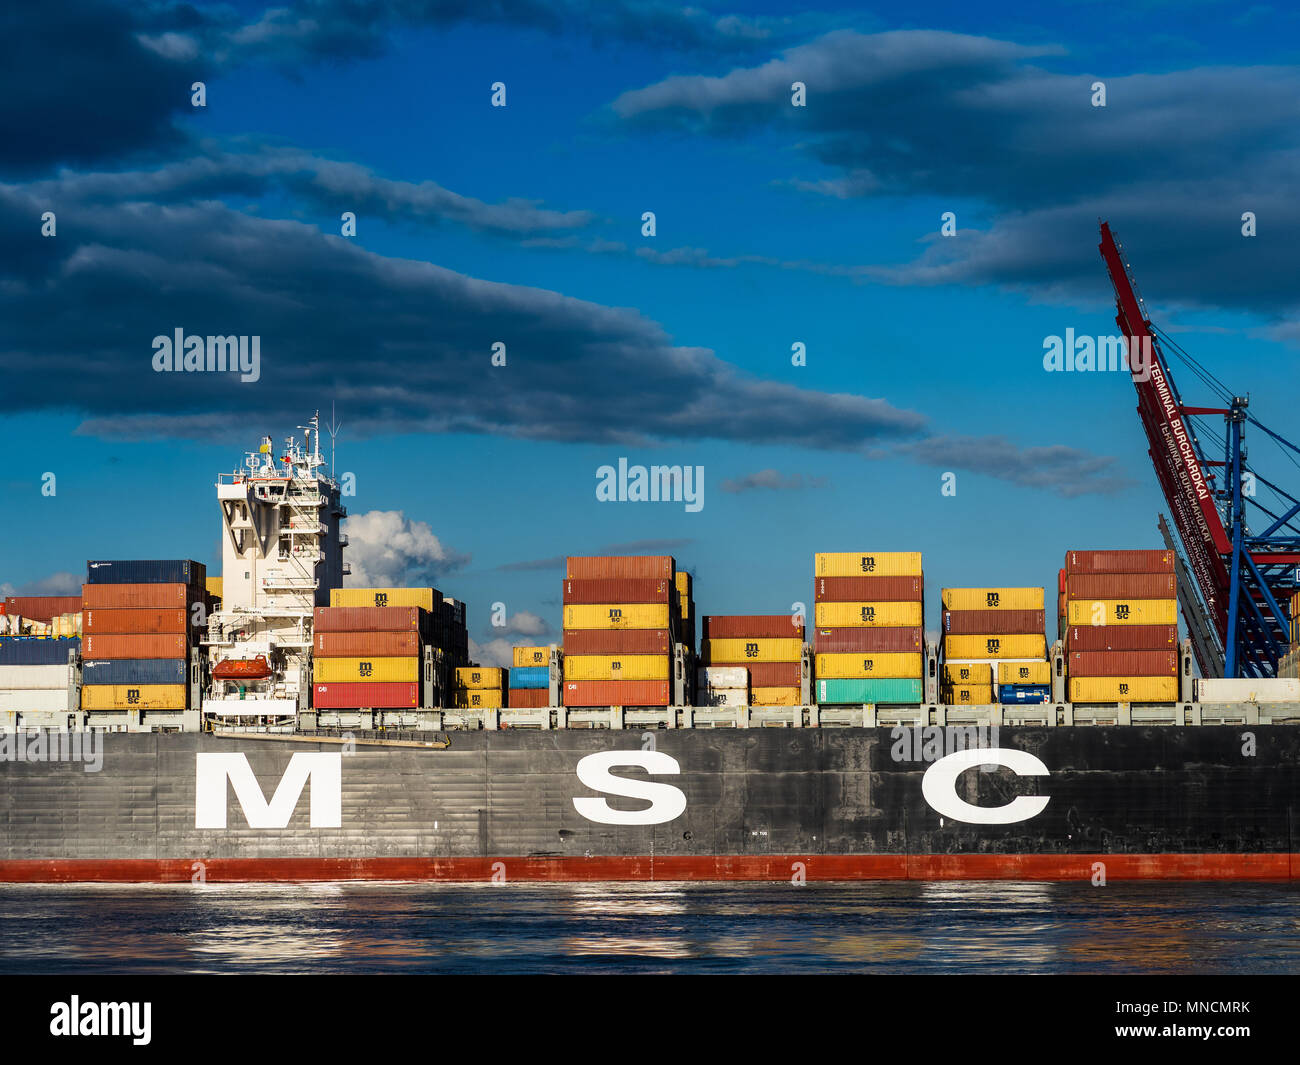 Msc In Port Stock Photos Amp Msc In Port Stock Images Alamy